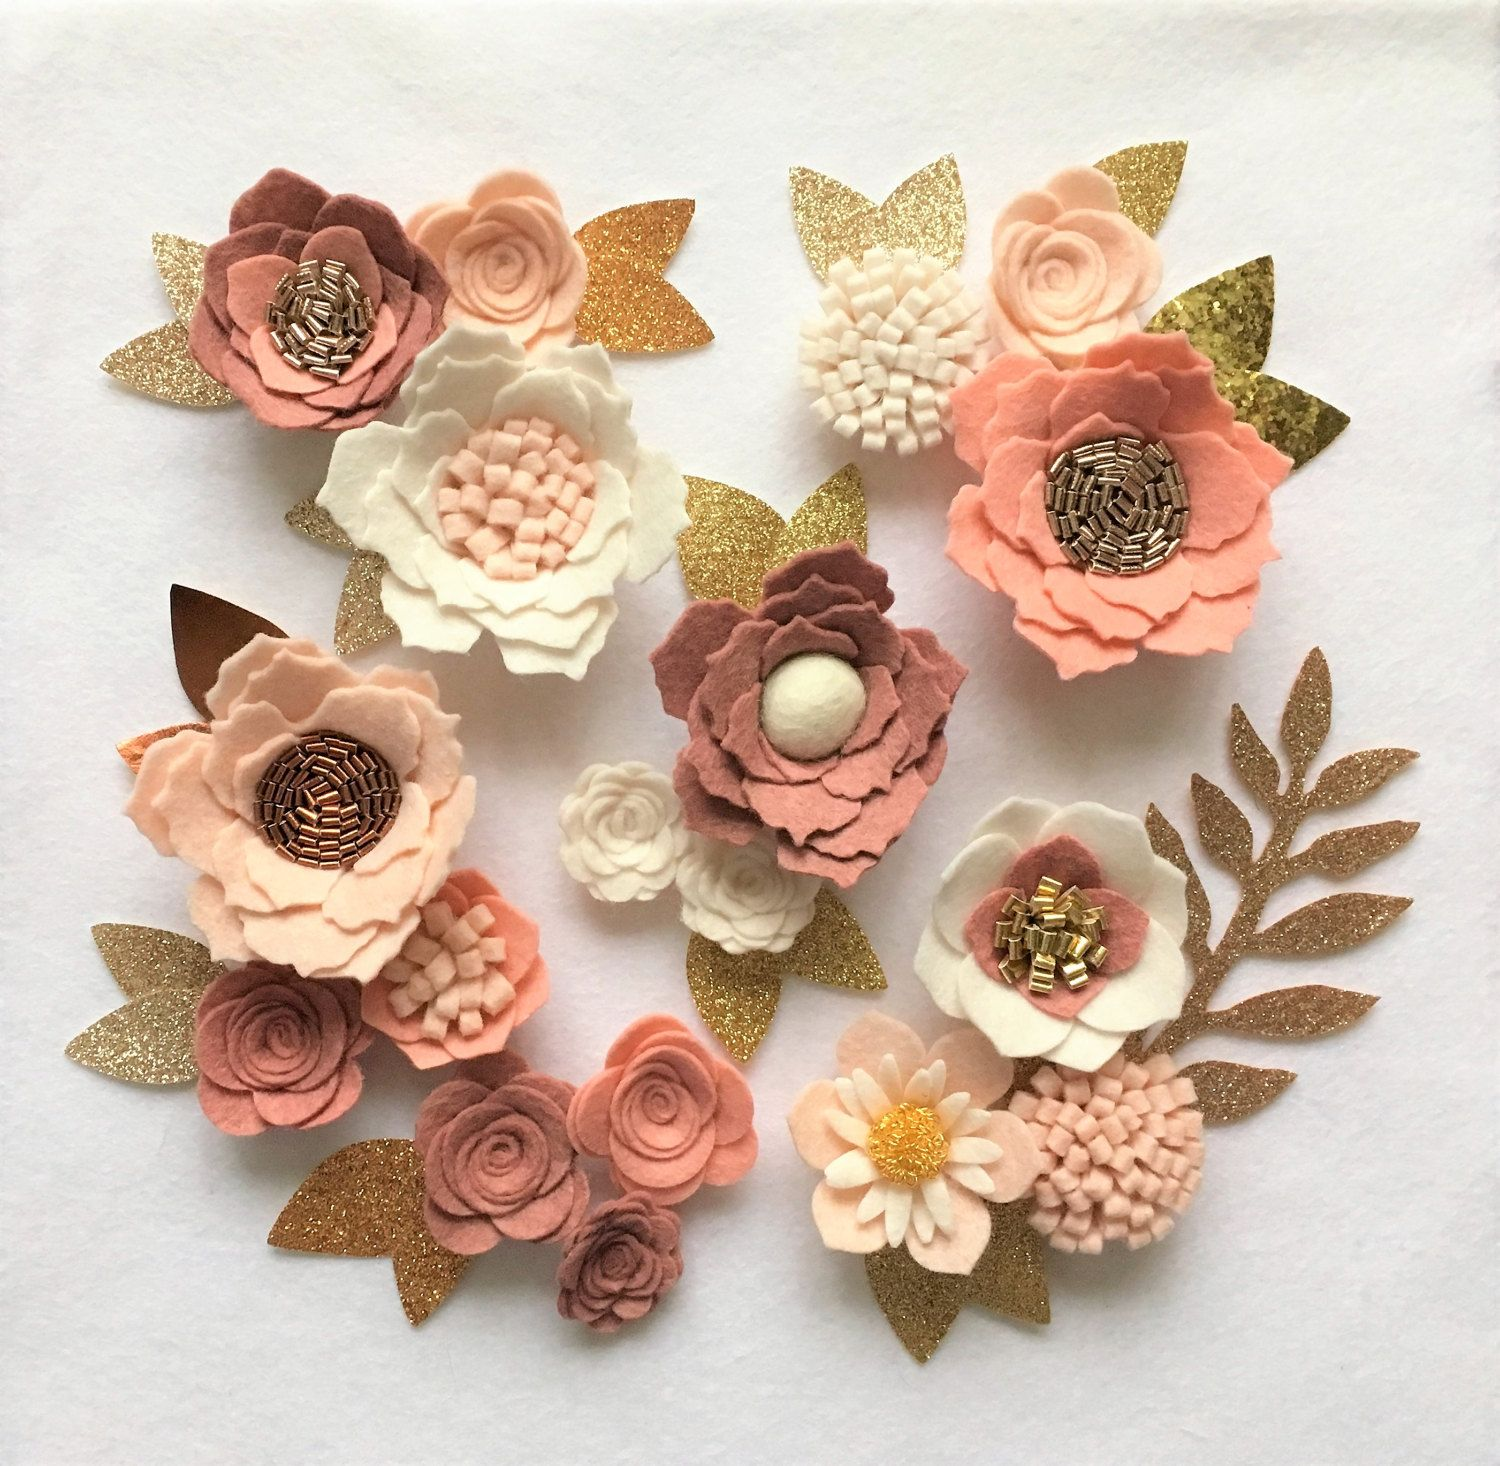 Pink/peach/cream felt 3d flowers/roses & leaves. Felt flower crown, flower headbands, flower garland, baby headband, felt posie, hand made by cutzbothways on Etsy #feltflowerheadbands